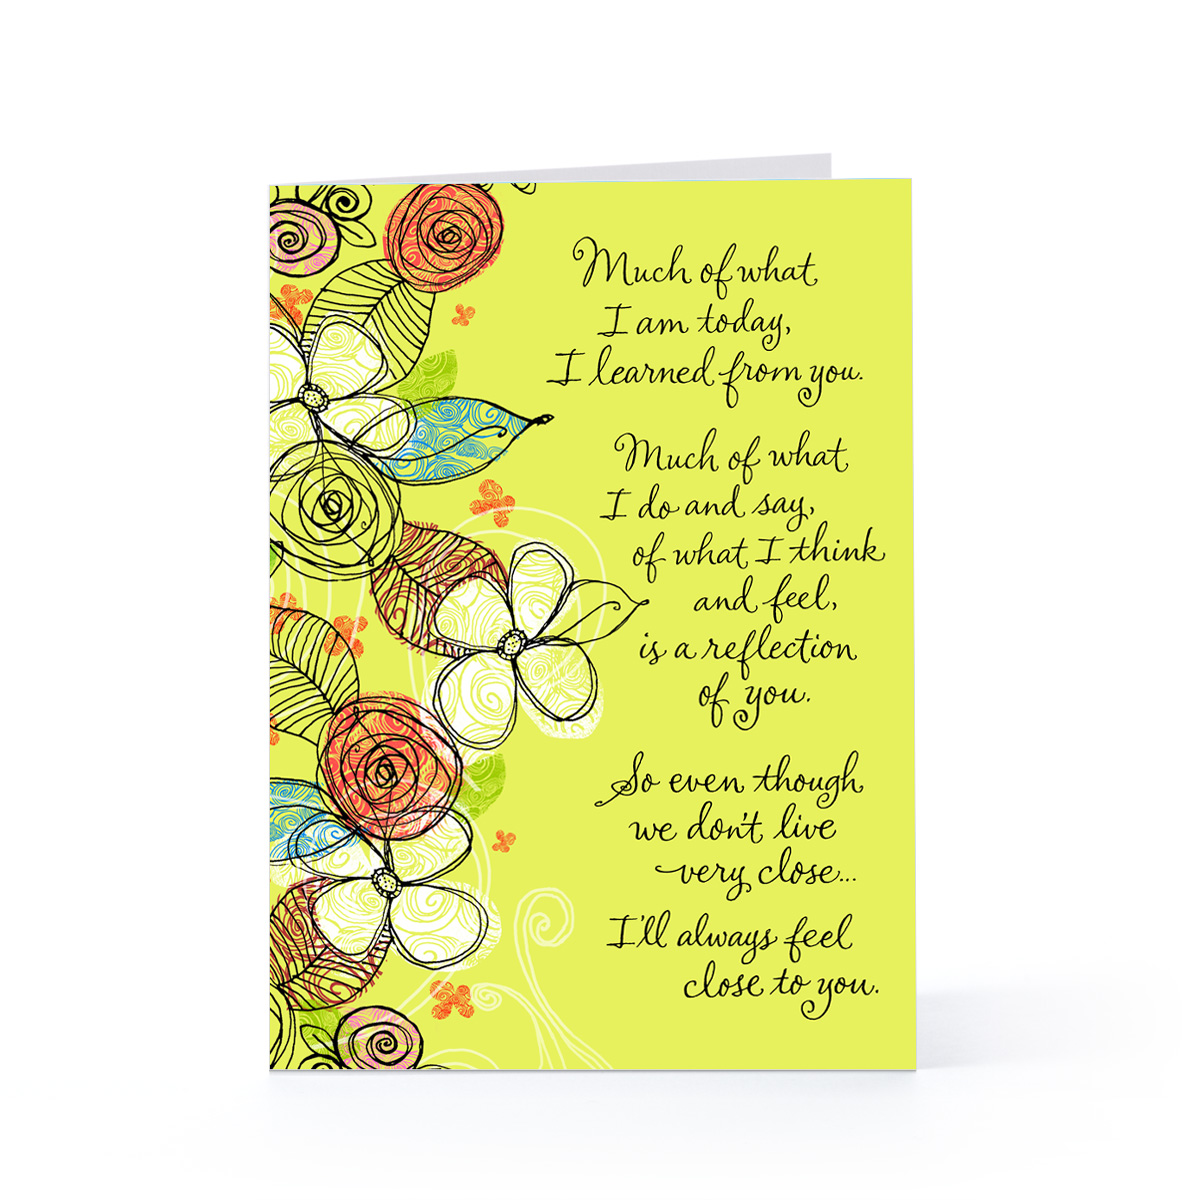 What to write in mothers birthday card gangcraft best mothers day greetings card messages mothers day birthday card kristyandbryce Images